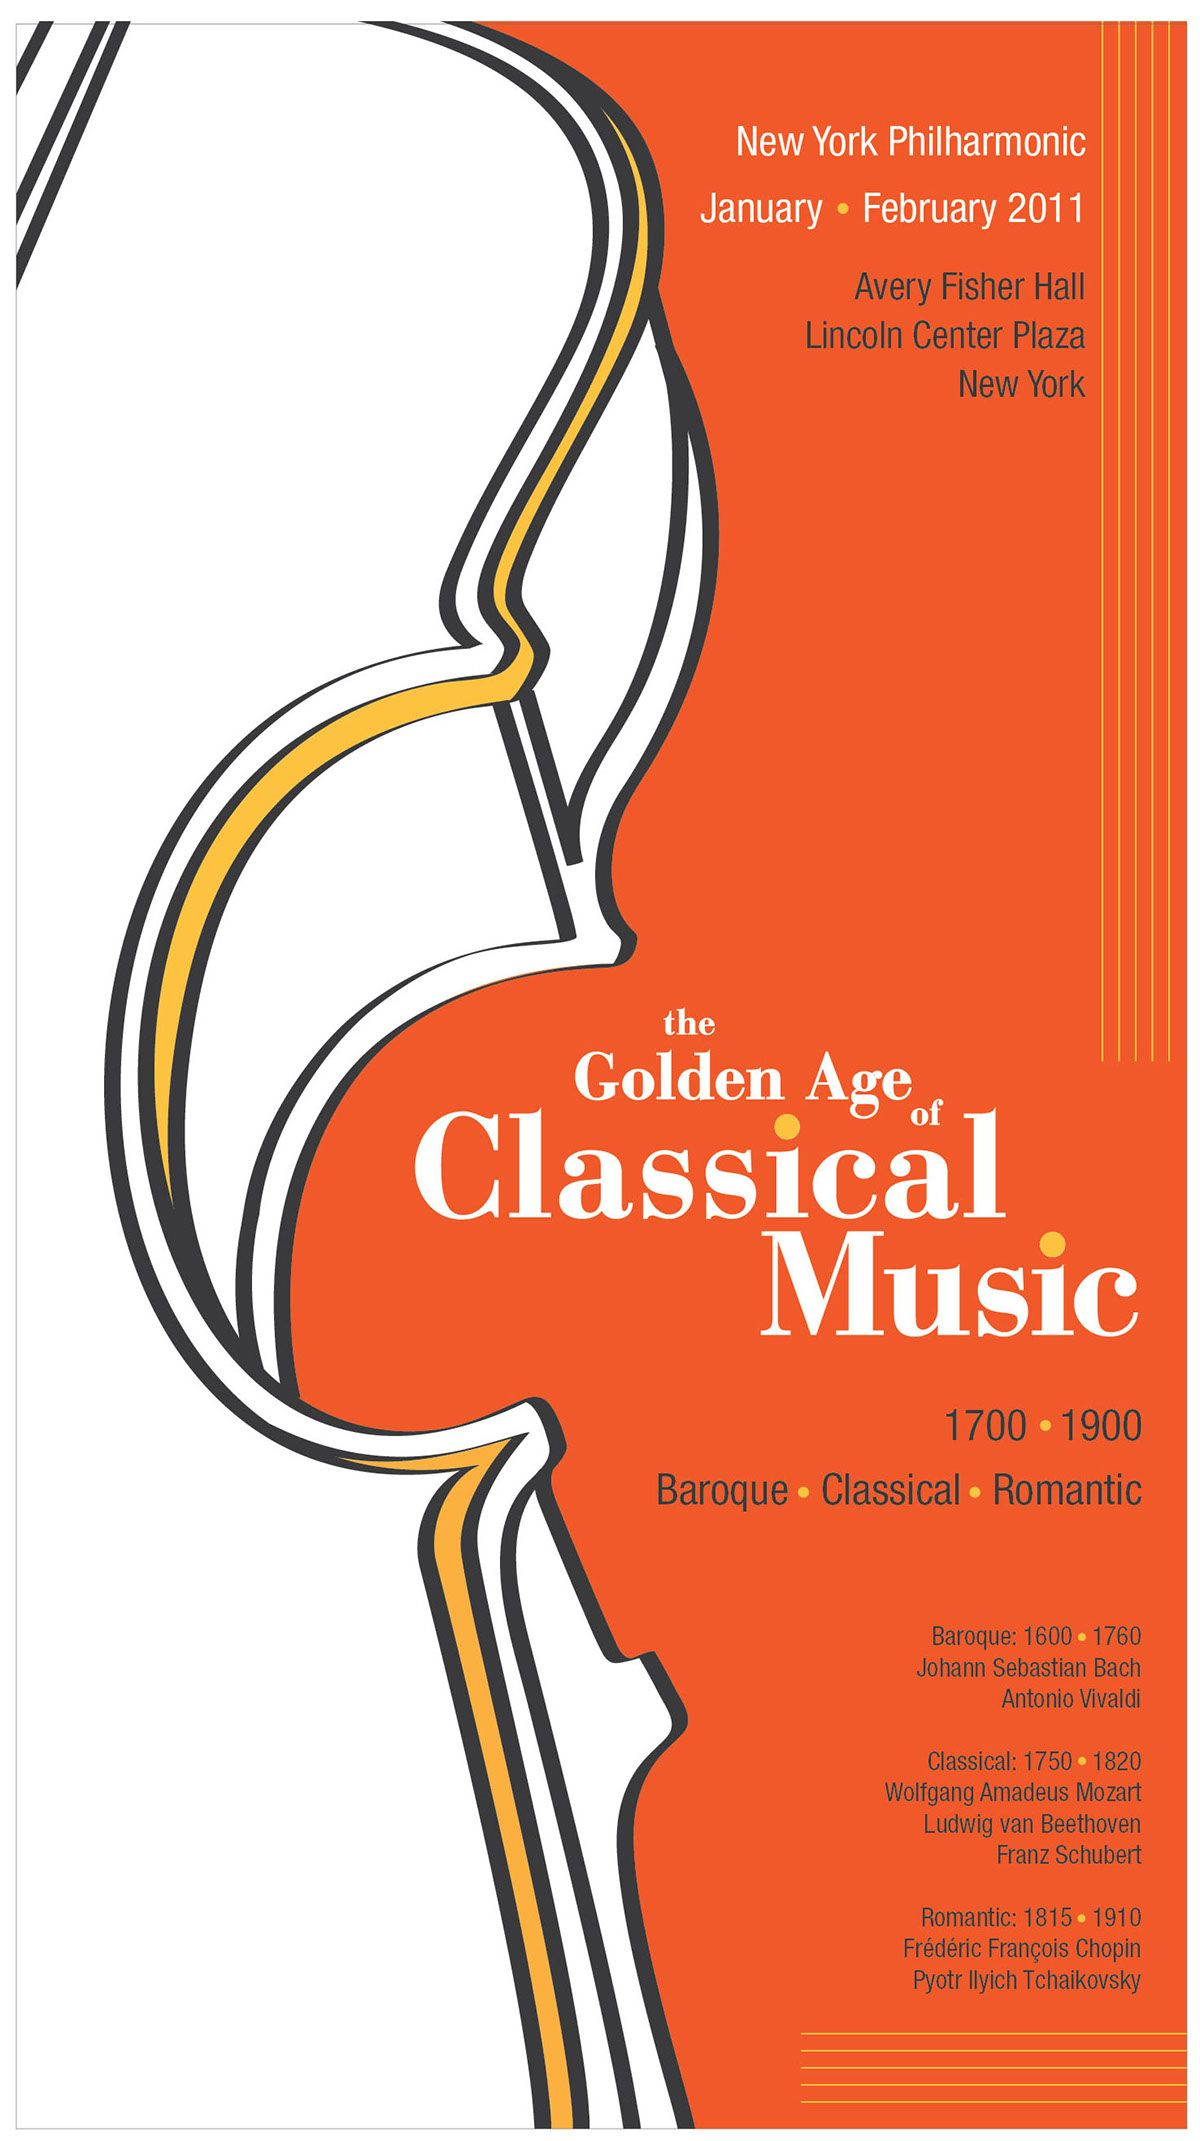 This poster and brochure design present Classical music in a new way. Fresh and exciting with bold color choices, the design is modern and yet still compliments this traditional subject.